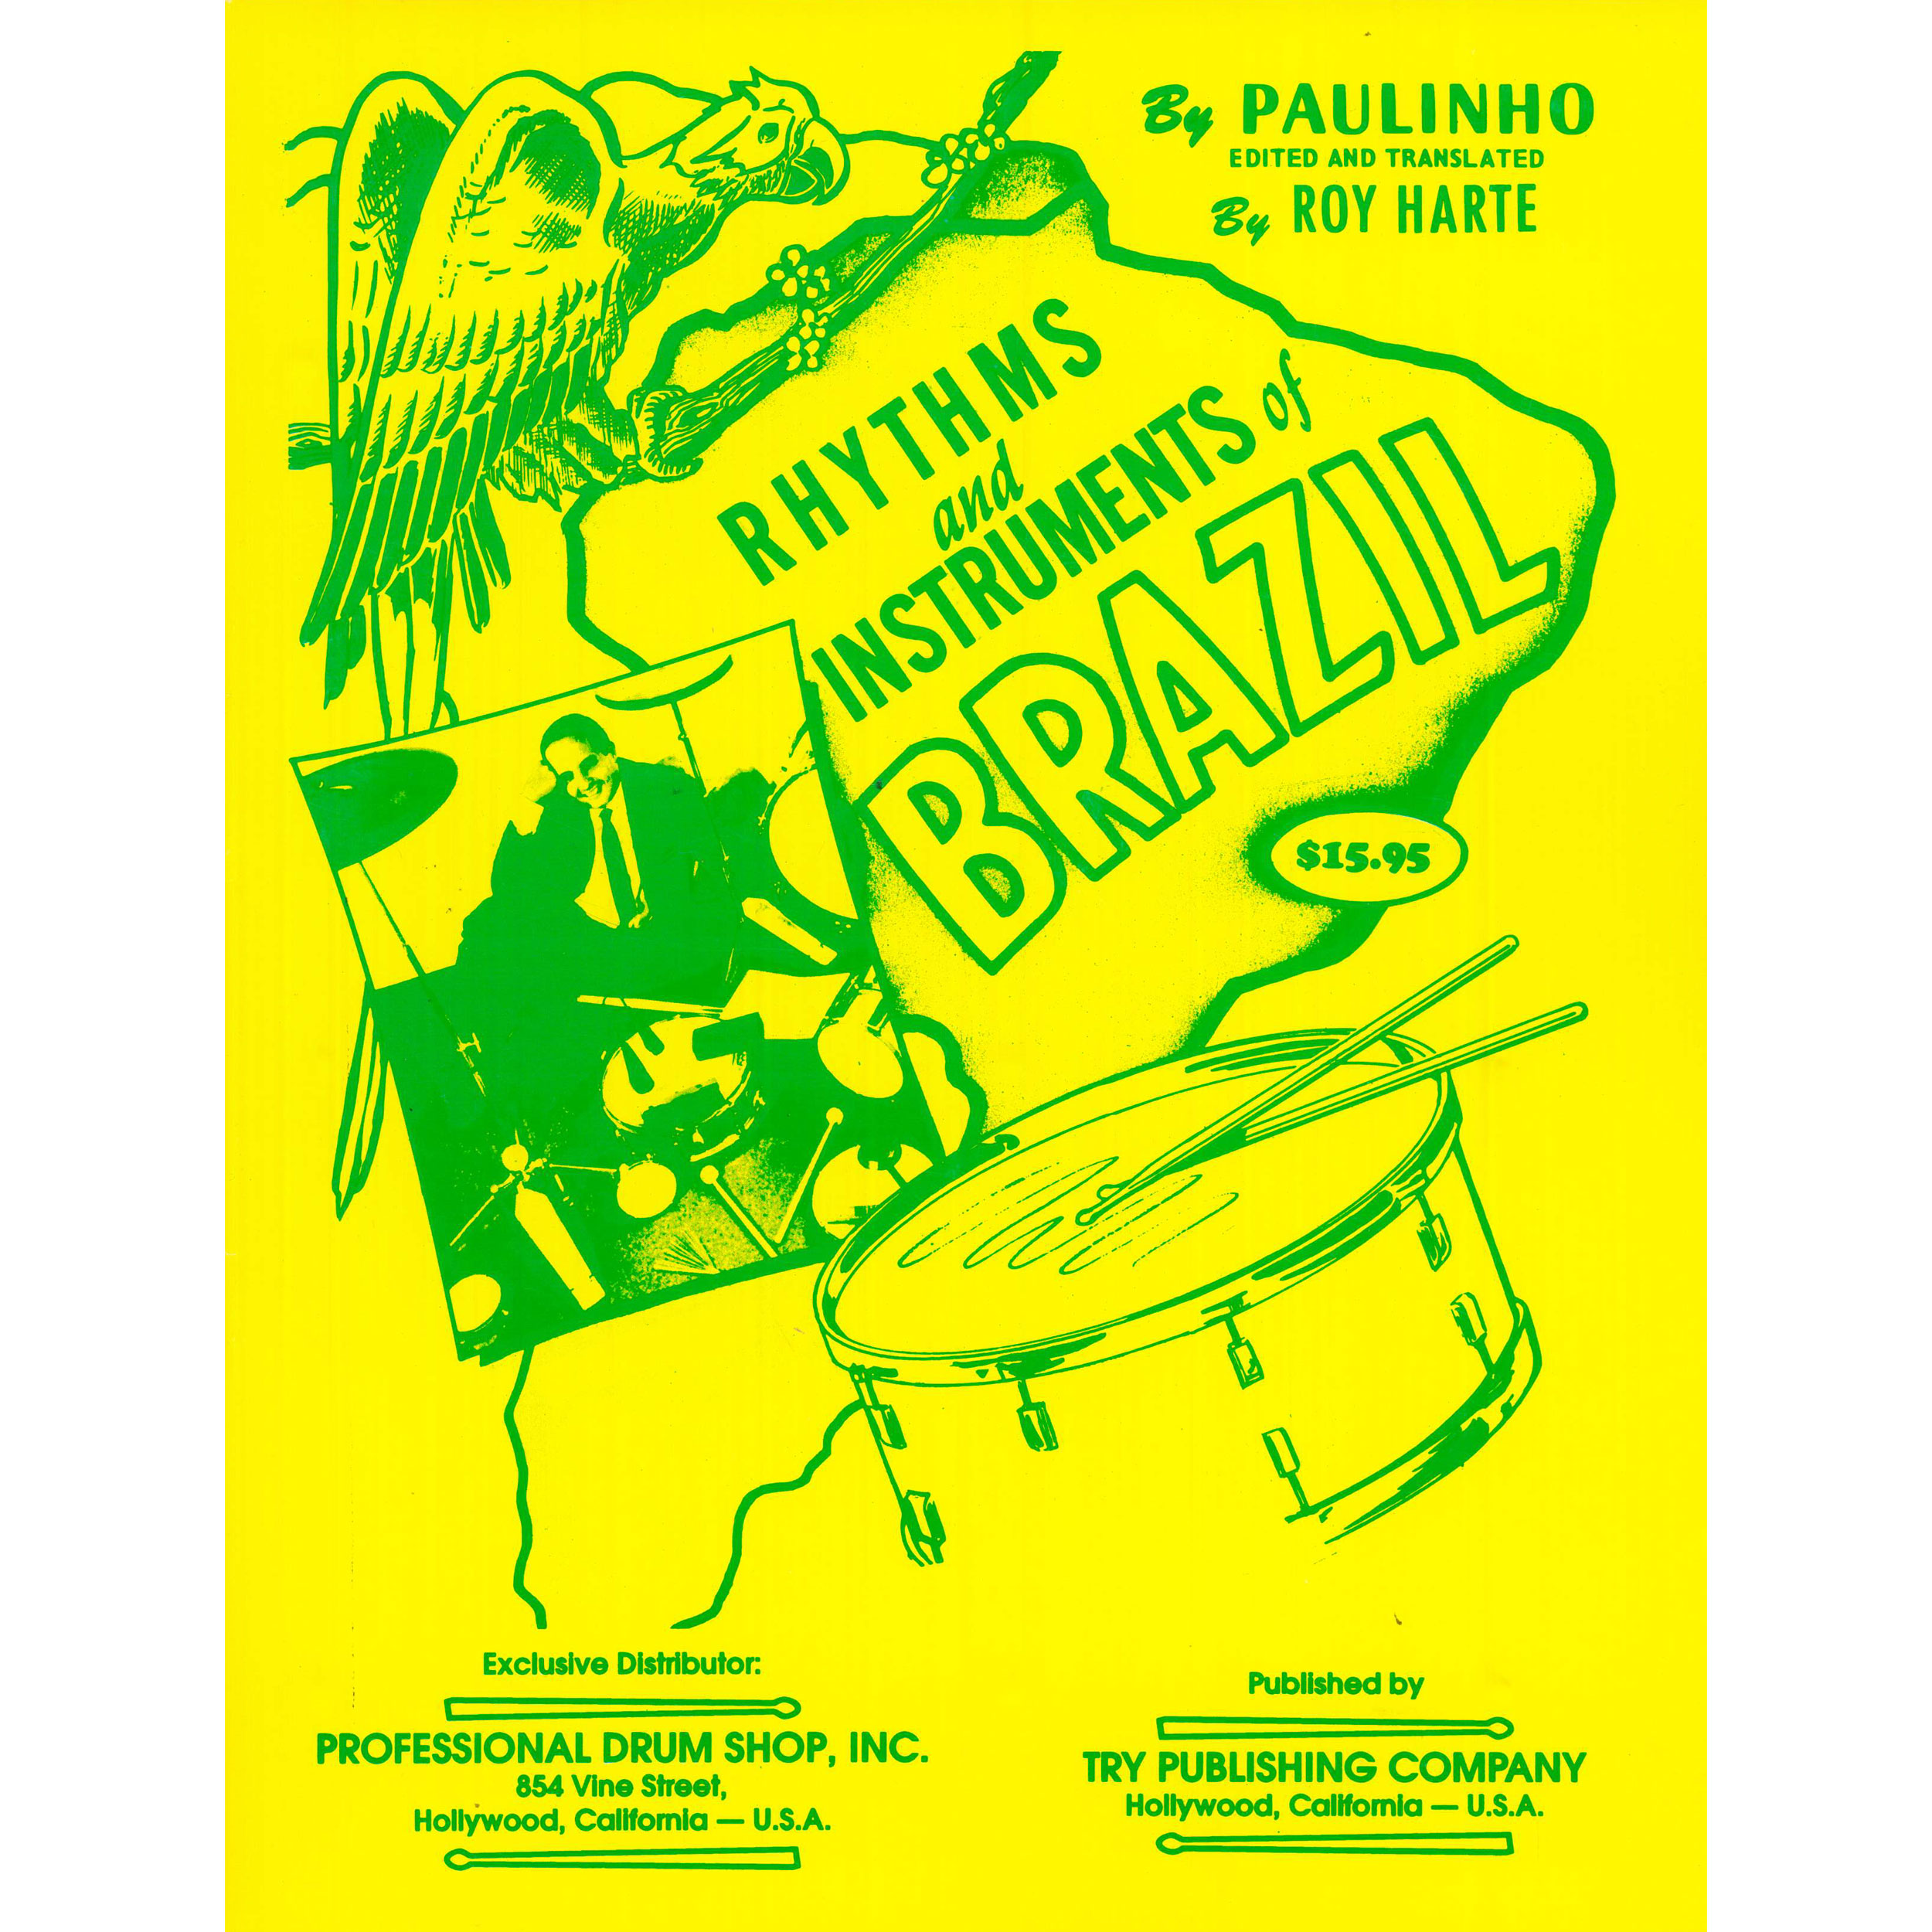 Rhythms and Instruments of Brazil by Paulinho